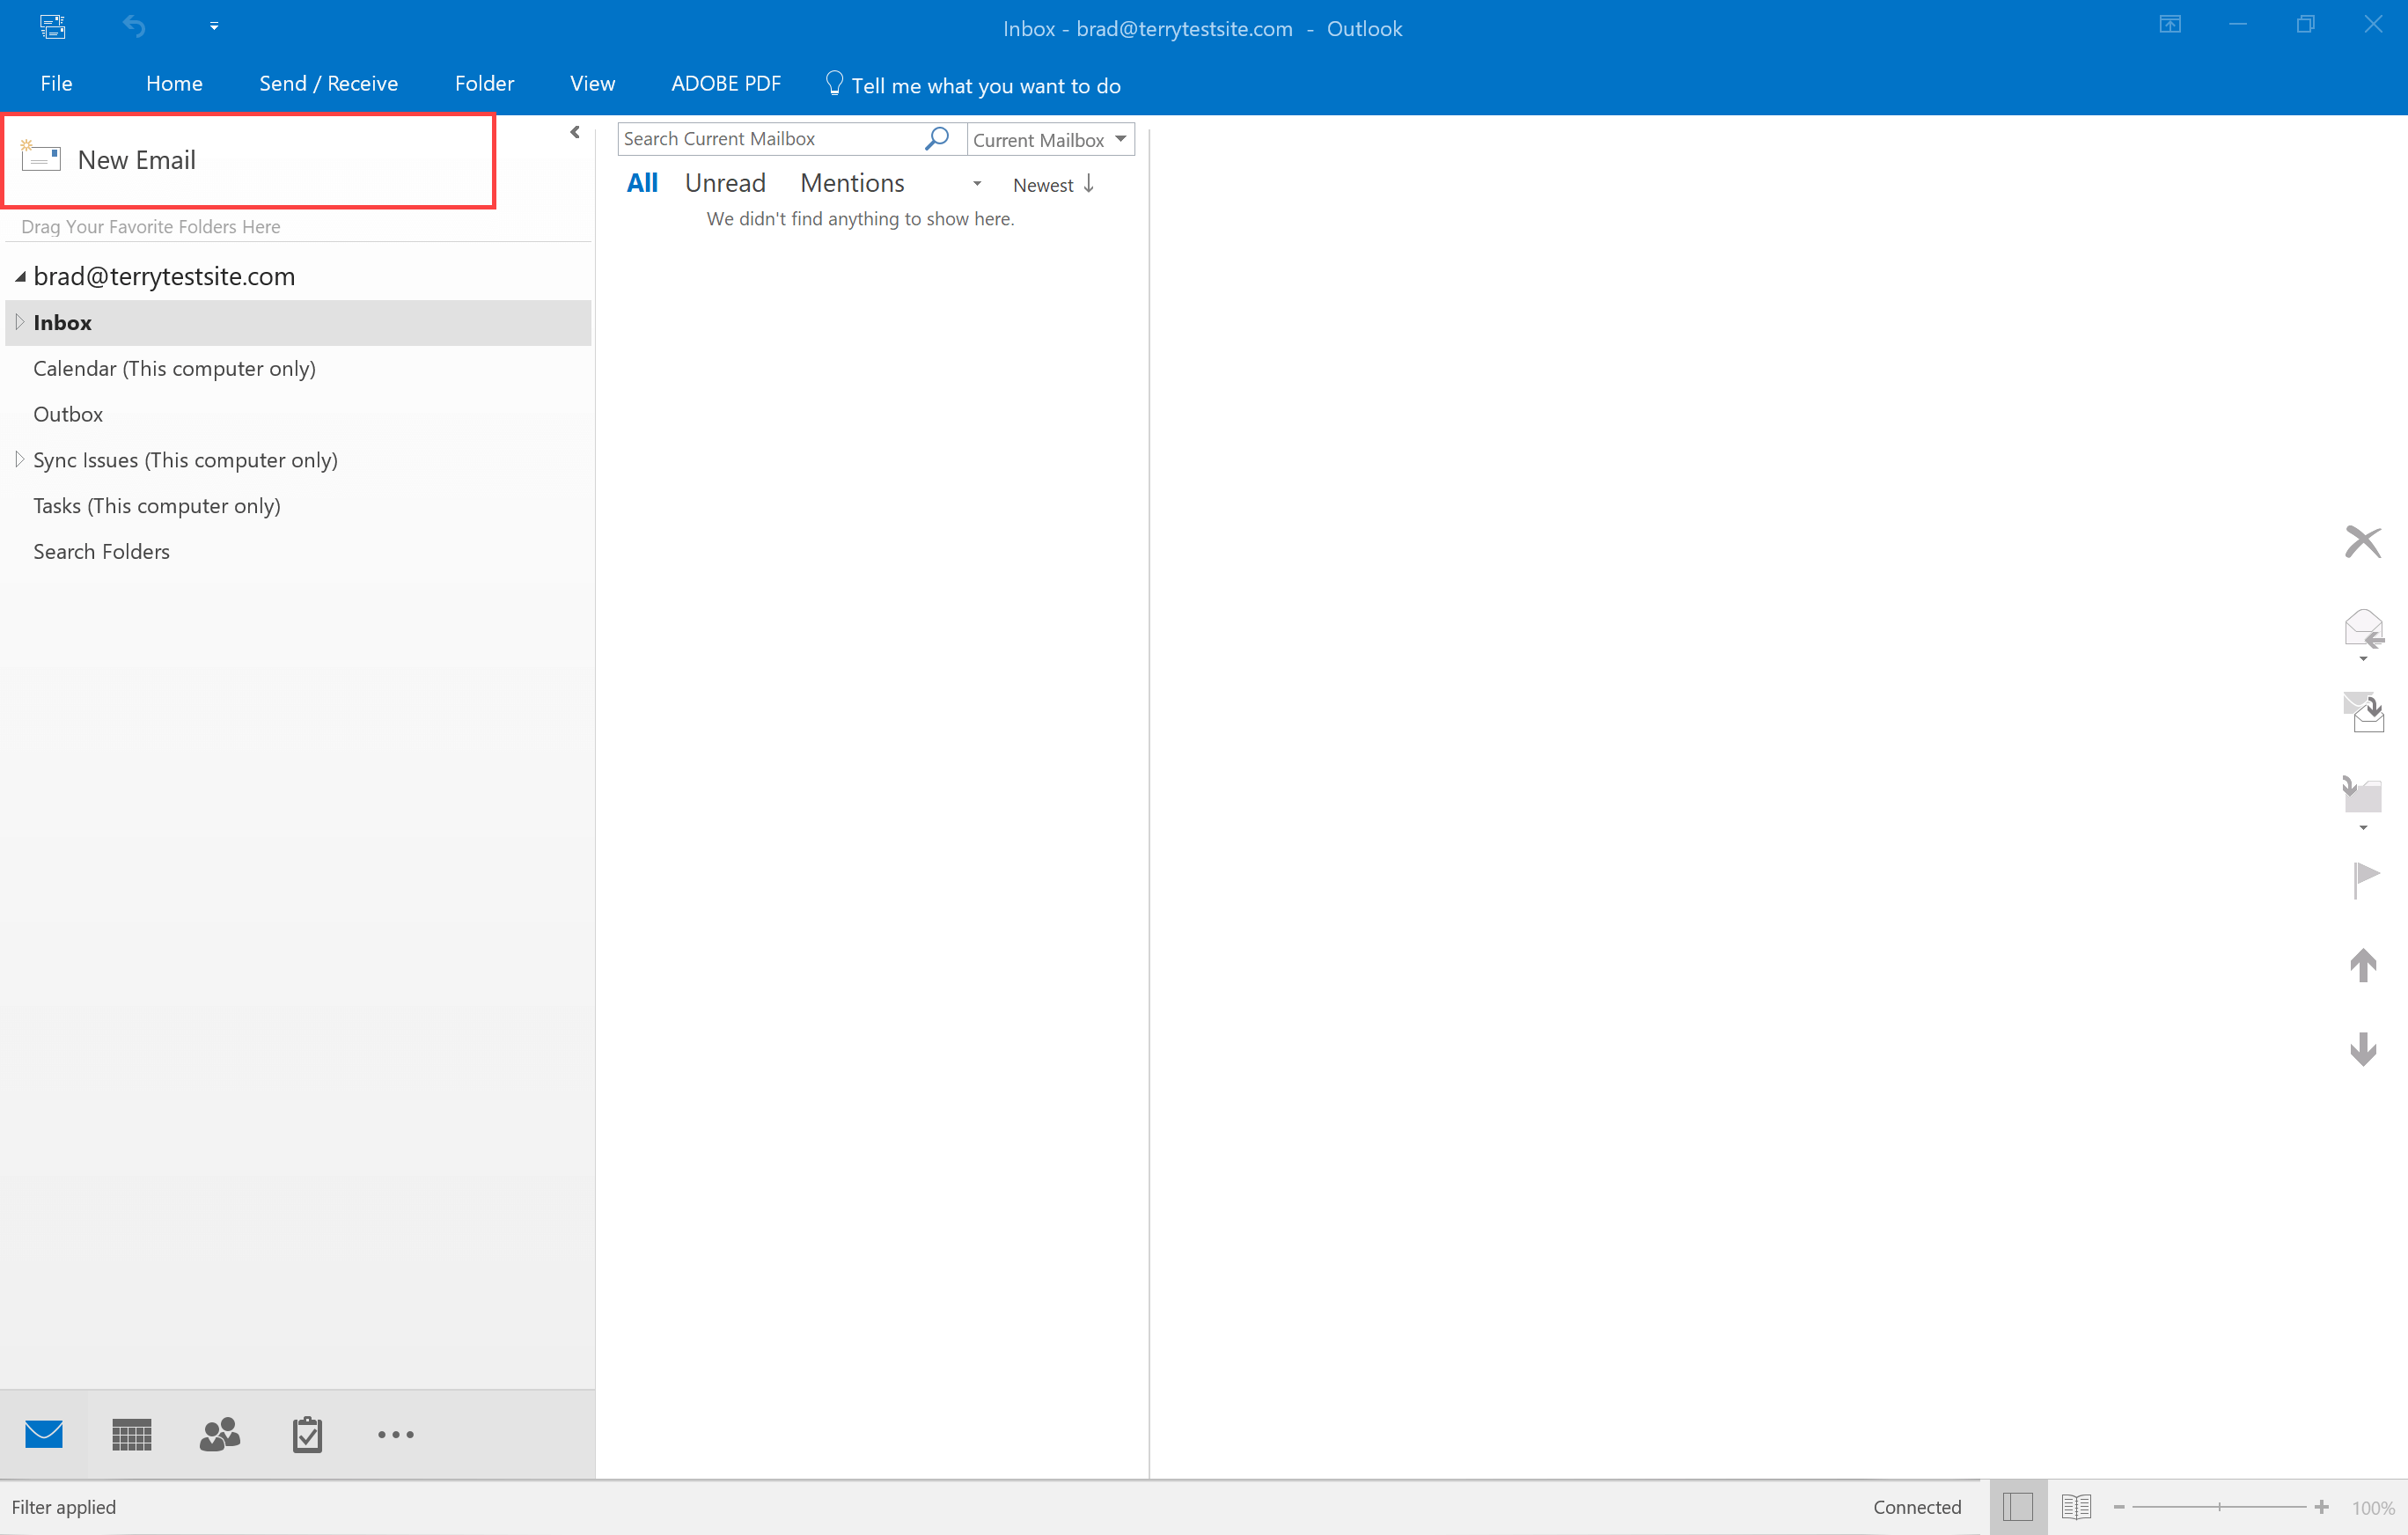 How to create and send email in Outlook 2016 - HostPapa Knowledge Base